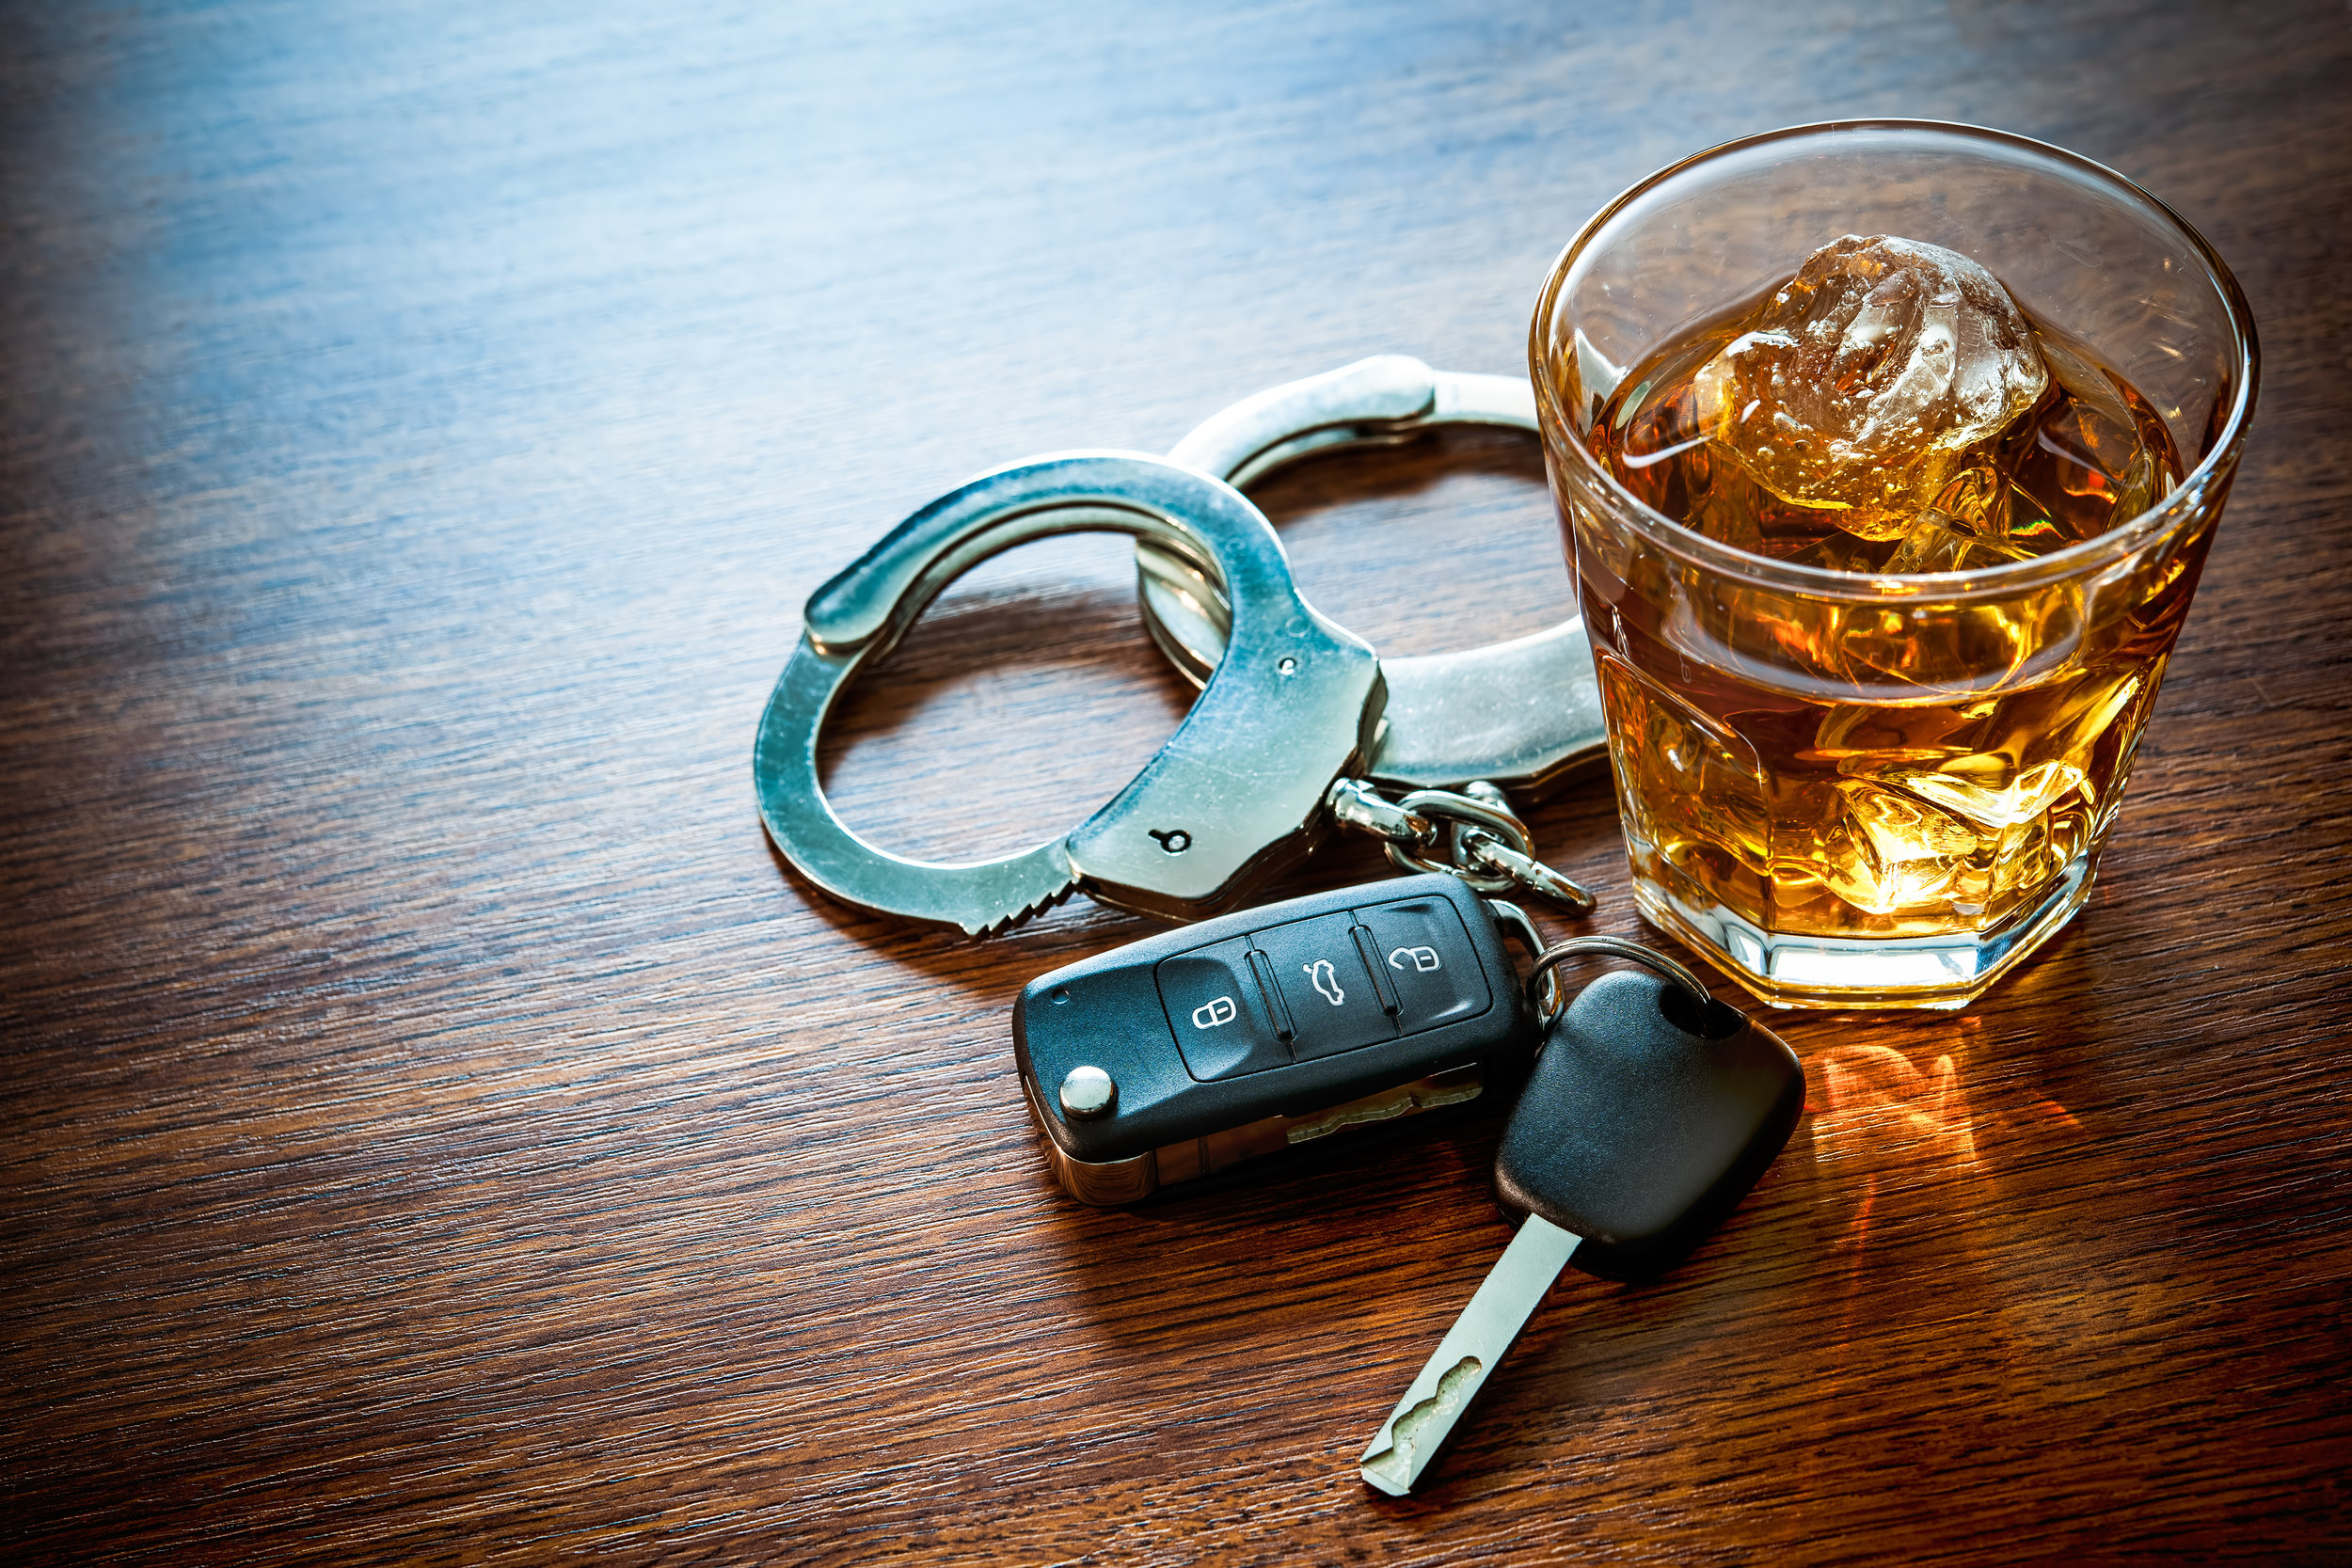 DUI Defense   In most cases you don't have to go to court.We can appear in court for you without your presence. We will obtain all pertinent evidence through the District Attorney or the subpoena process. The development of a defense will be used in plea bargain negotiating, attempting to dismiss the case, or in defending you at trial.  Ask us how the DMV hearing can be used to your advantage in DUI defense.